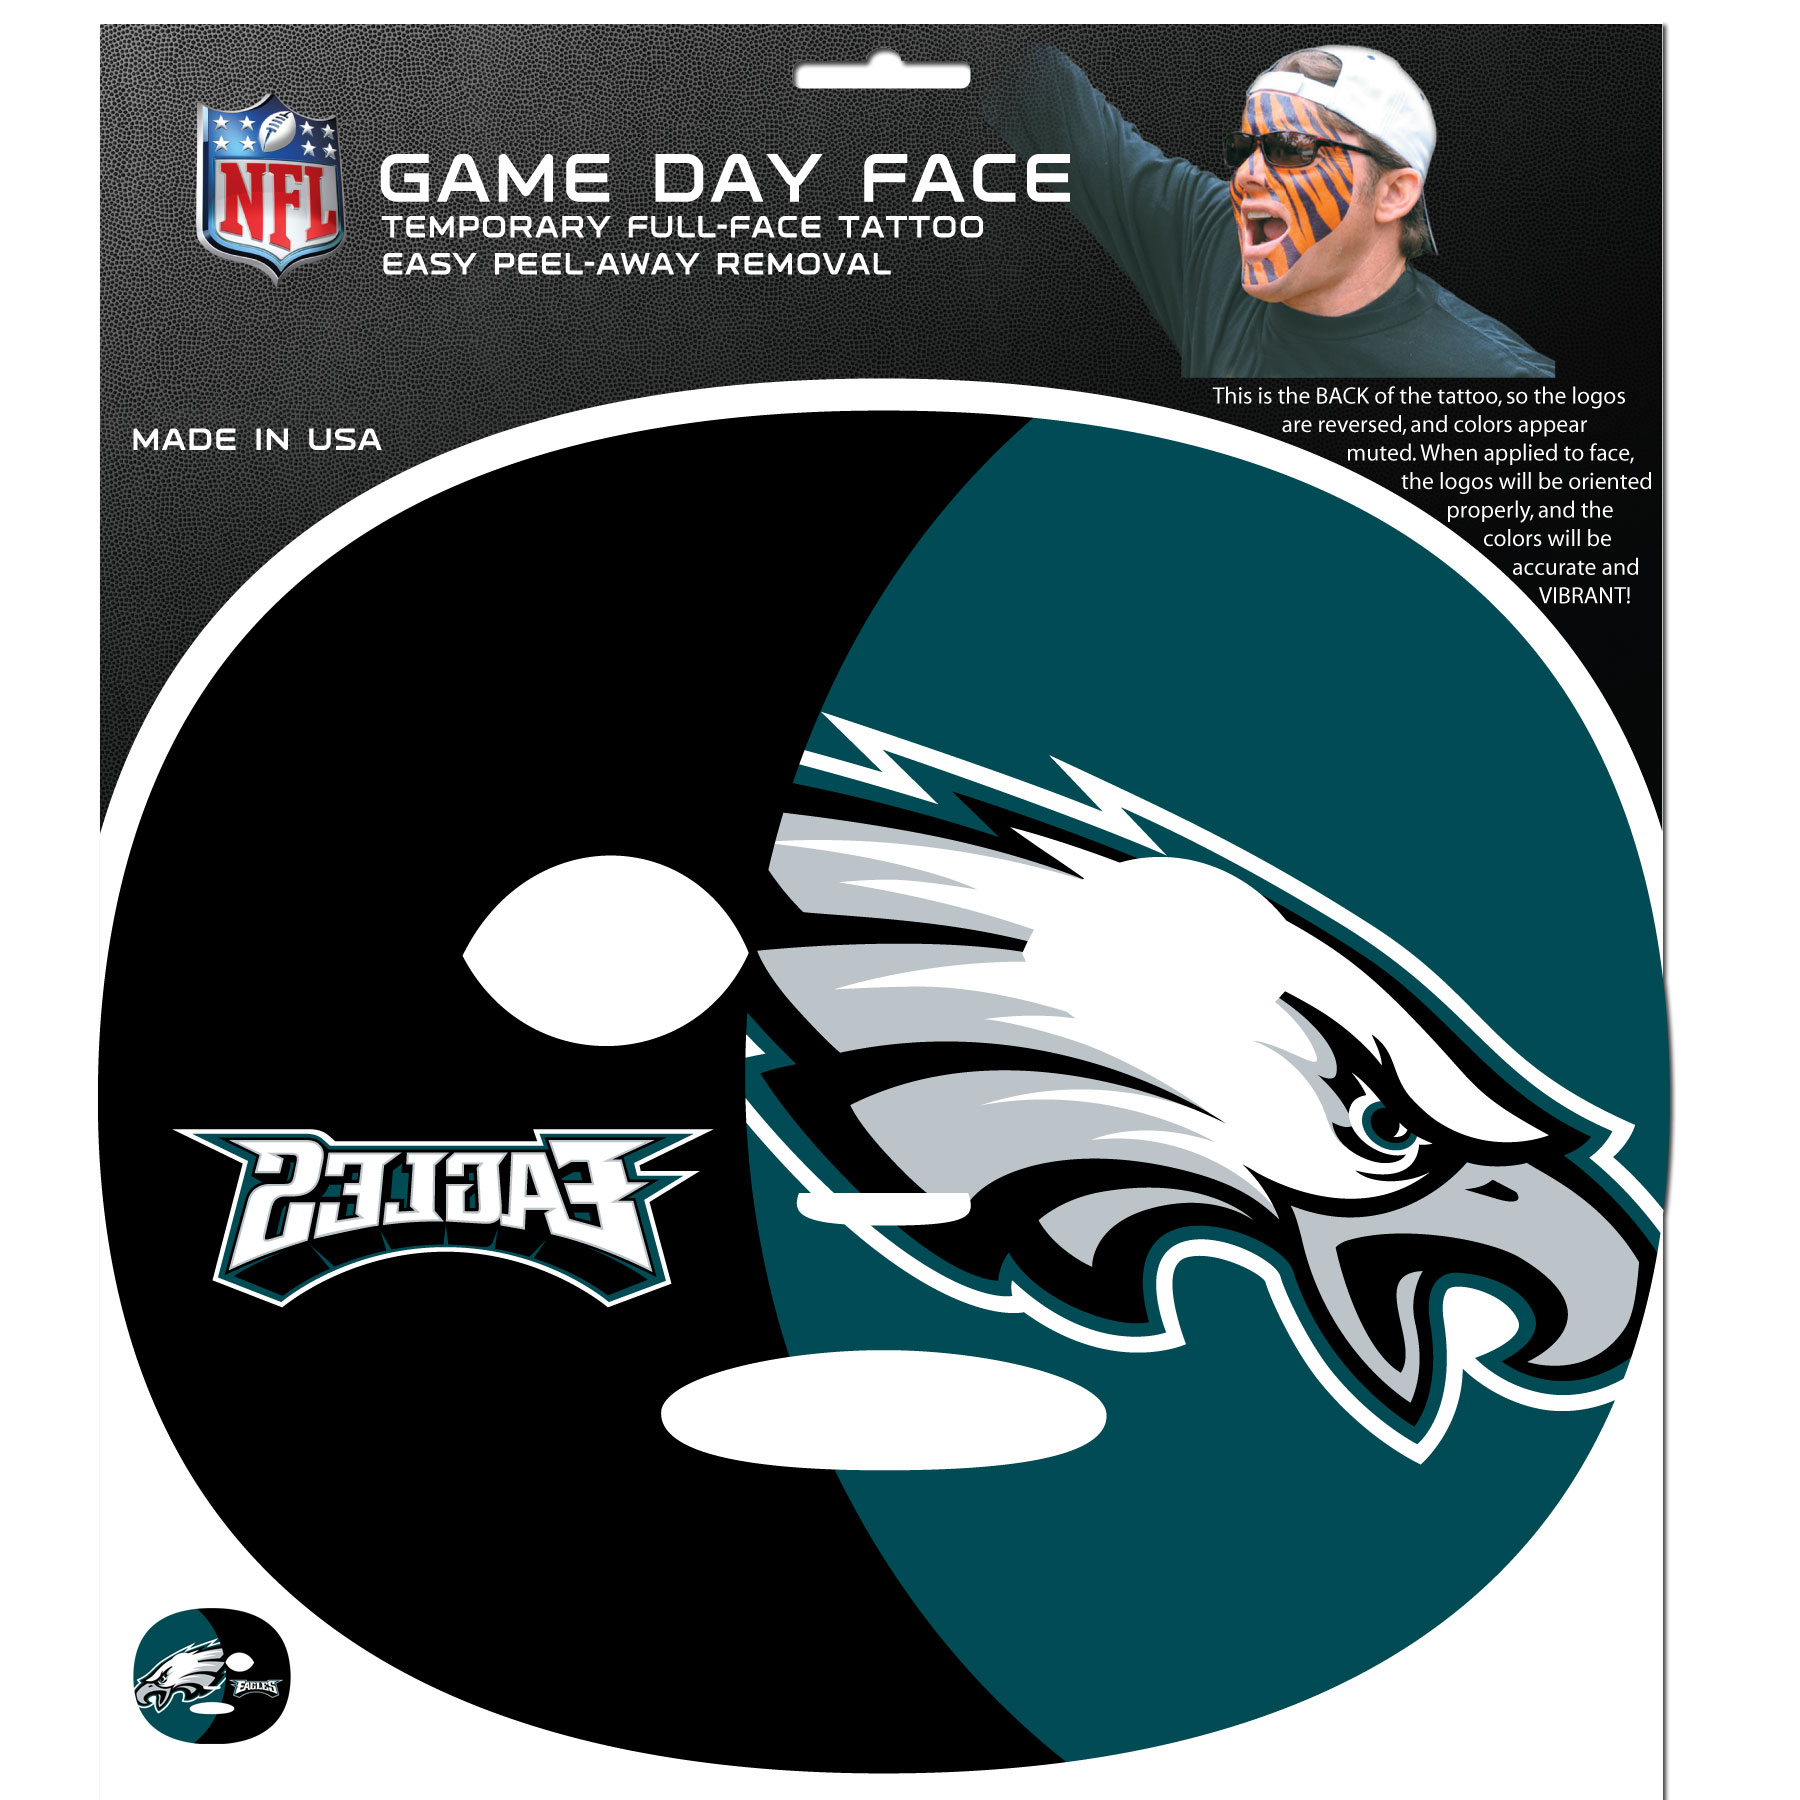 Philadelphia Eagles Game Face Temporary Tattoo - No better way to show your Philadelphia Eagles pride than by painting your face. Siskiyou's Game Day Face Temporary Tattoo isn't your typical face paint. It is a water based application that doesn't smudge, smear or sweat off  while you're wearing it and easily peels off after you're done celebrating your team's big Win! The temporary tattoo is large enough to trim down to fit your face.  Our Game Day Face Temporary Tattoo's are fun for fans of all ages. You may have seen our product before,  these are the same Temporary Face Tattoos as pitched on ABC's Shark Tank.